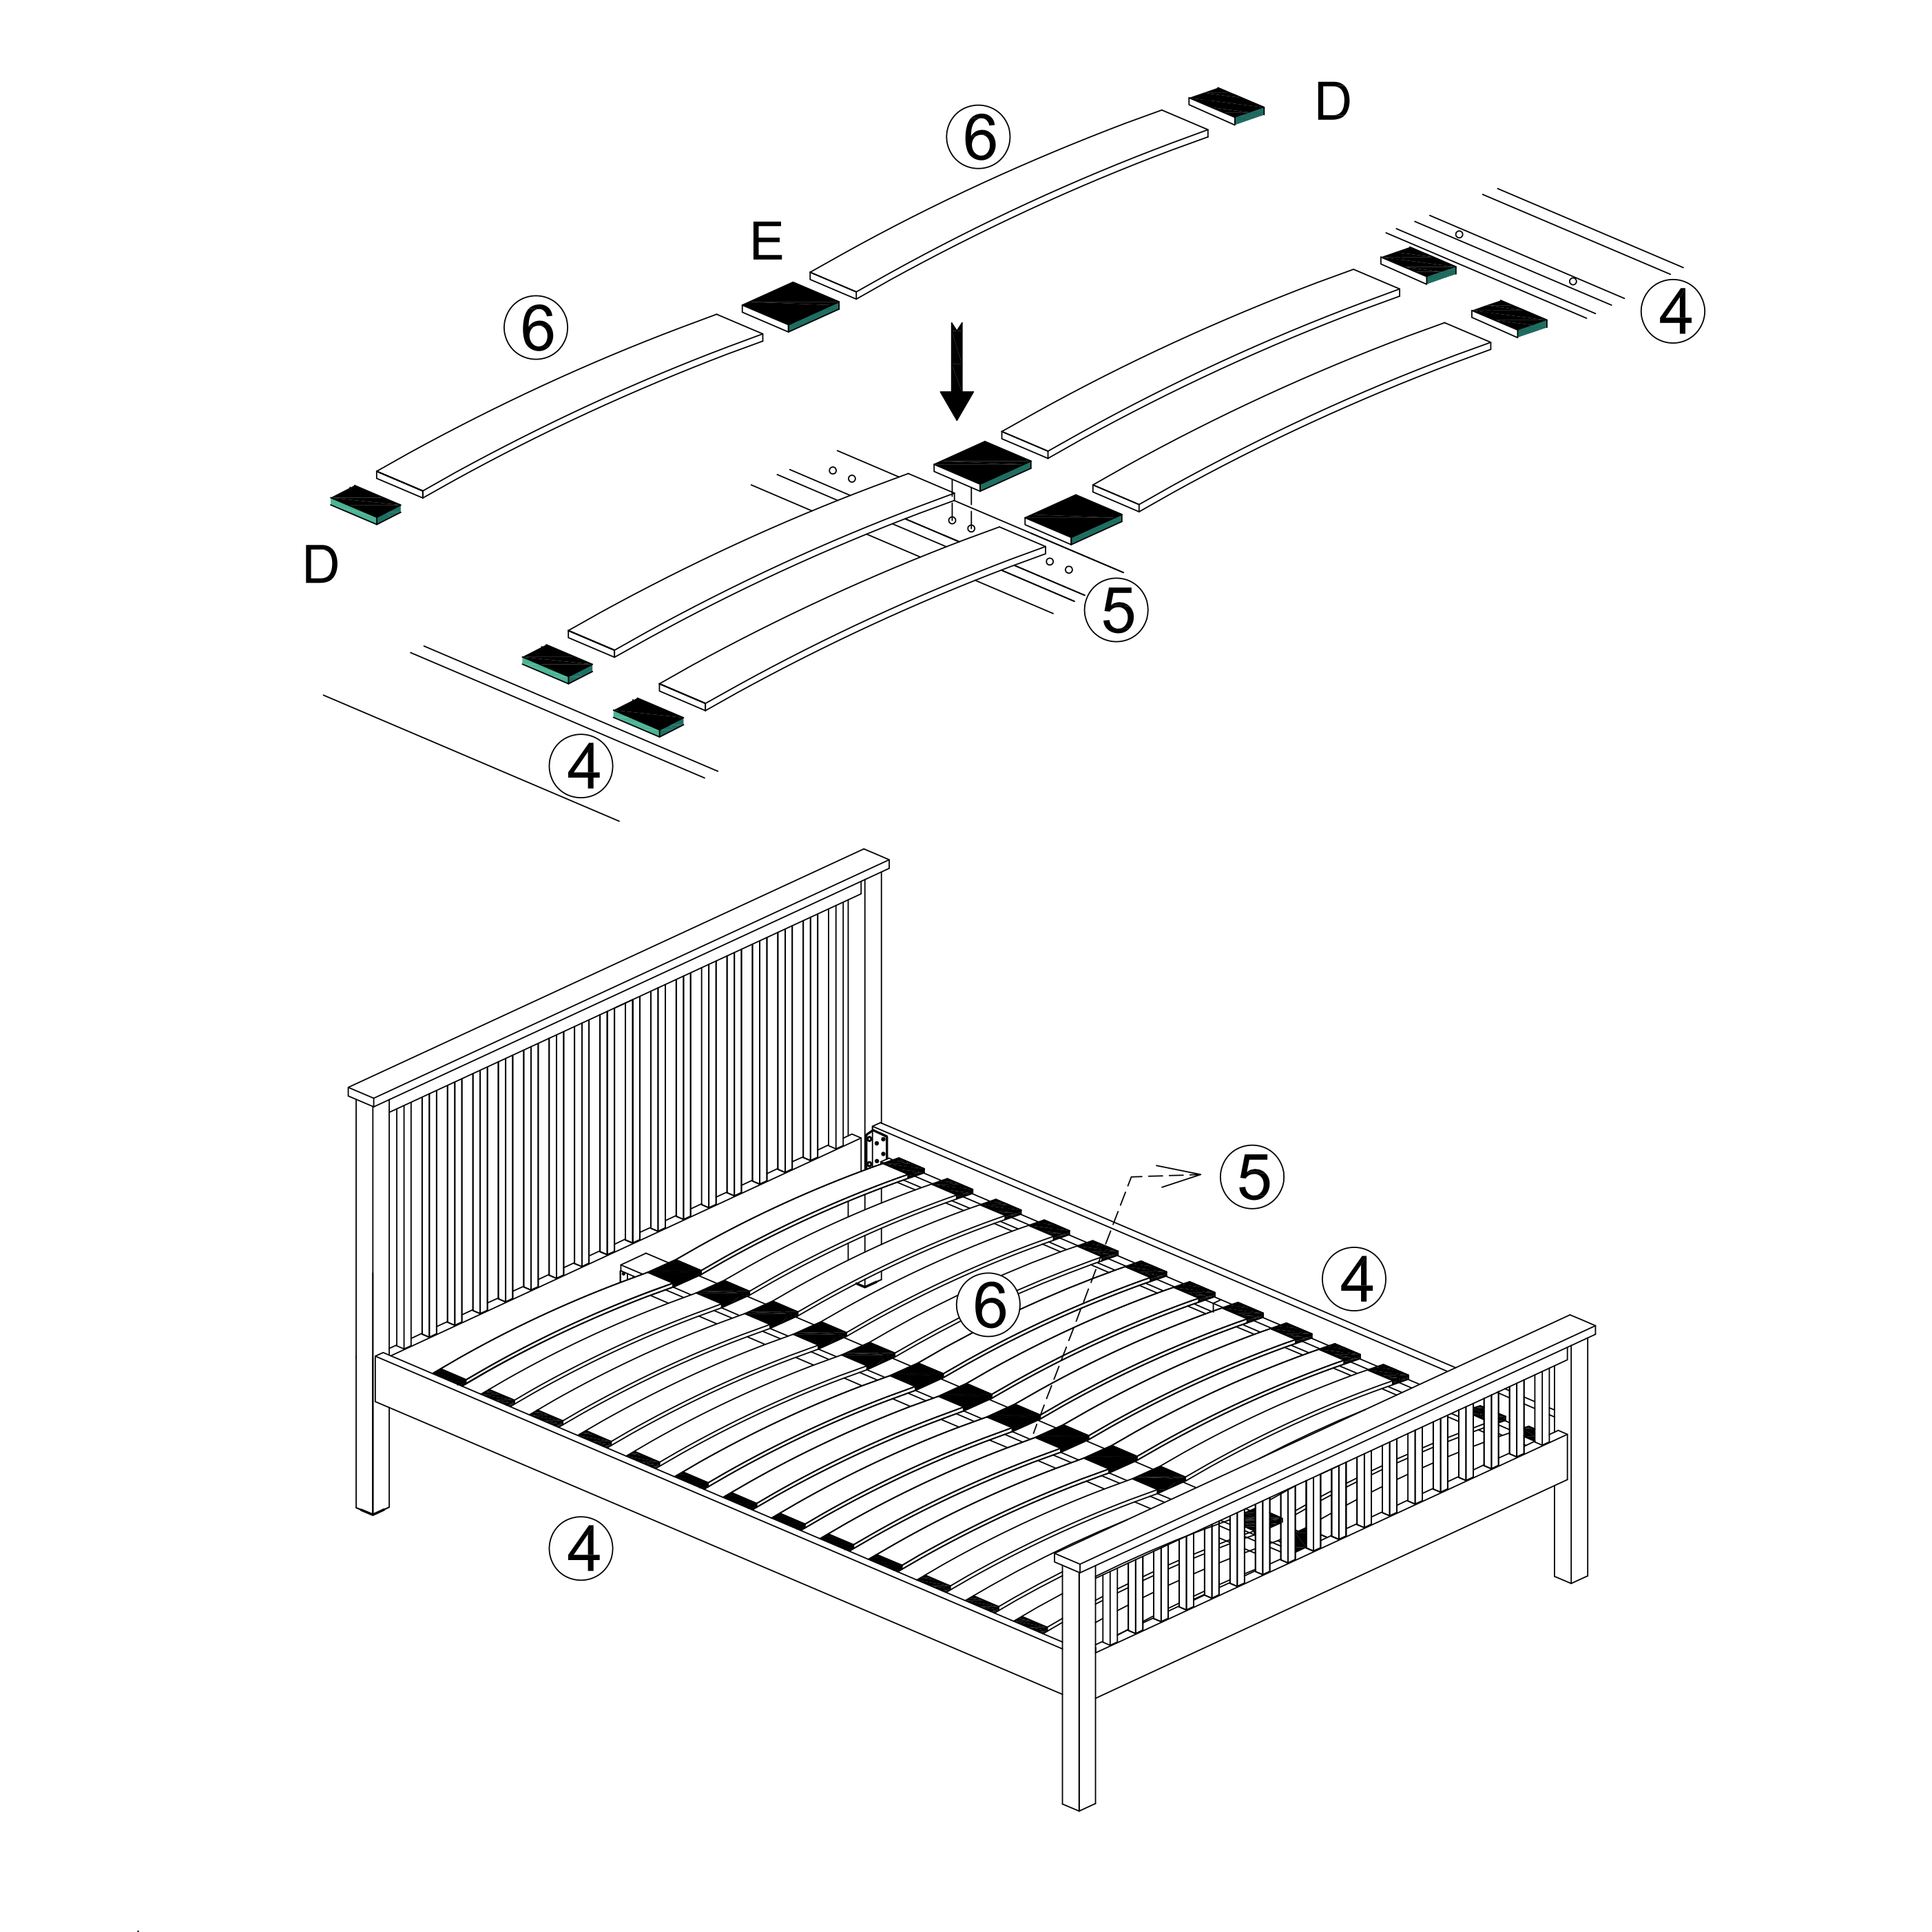 Assembly instructions for a sprung slatted bed frame